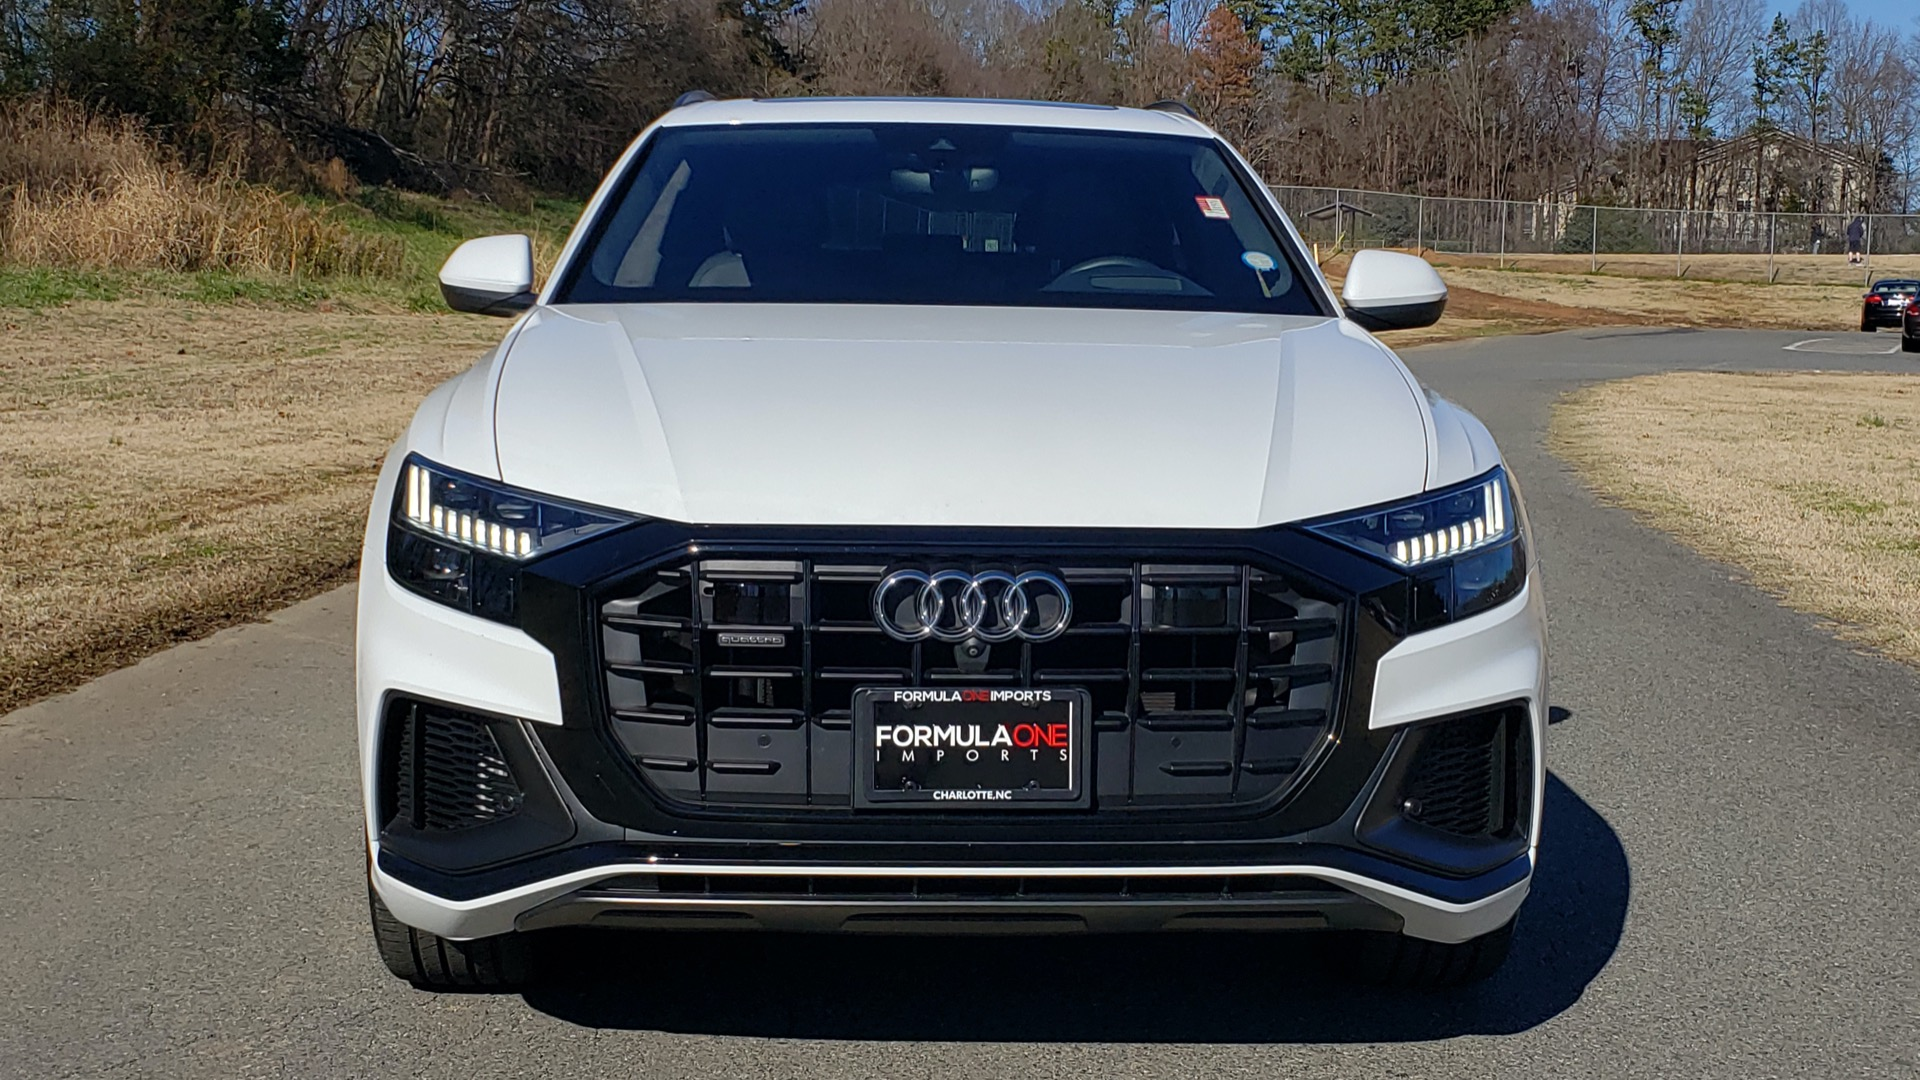 Used 2019 Audi Q8 PRESTIGE S-LINE / LUX PKG / ADAPT CHASSIS / YEAR ONE / CLD WTHR for sale Sold at Formula Imports in Charlotte NC 28227 24